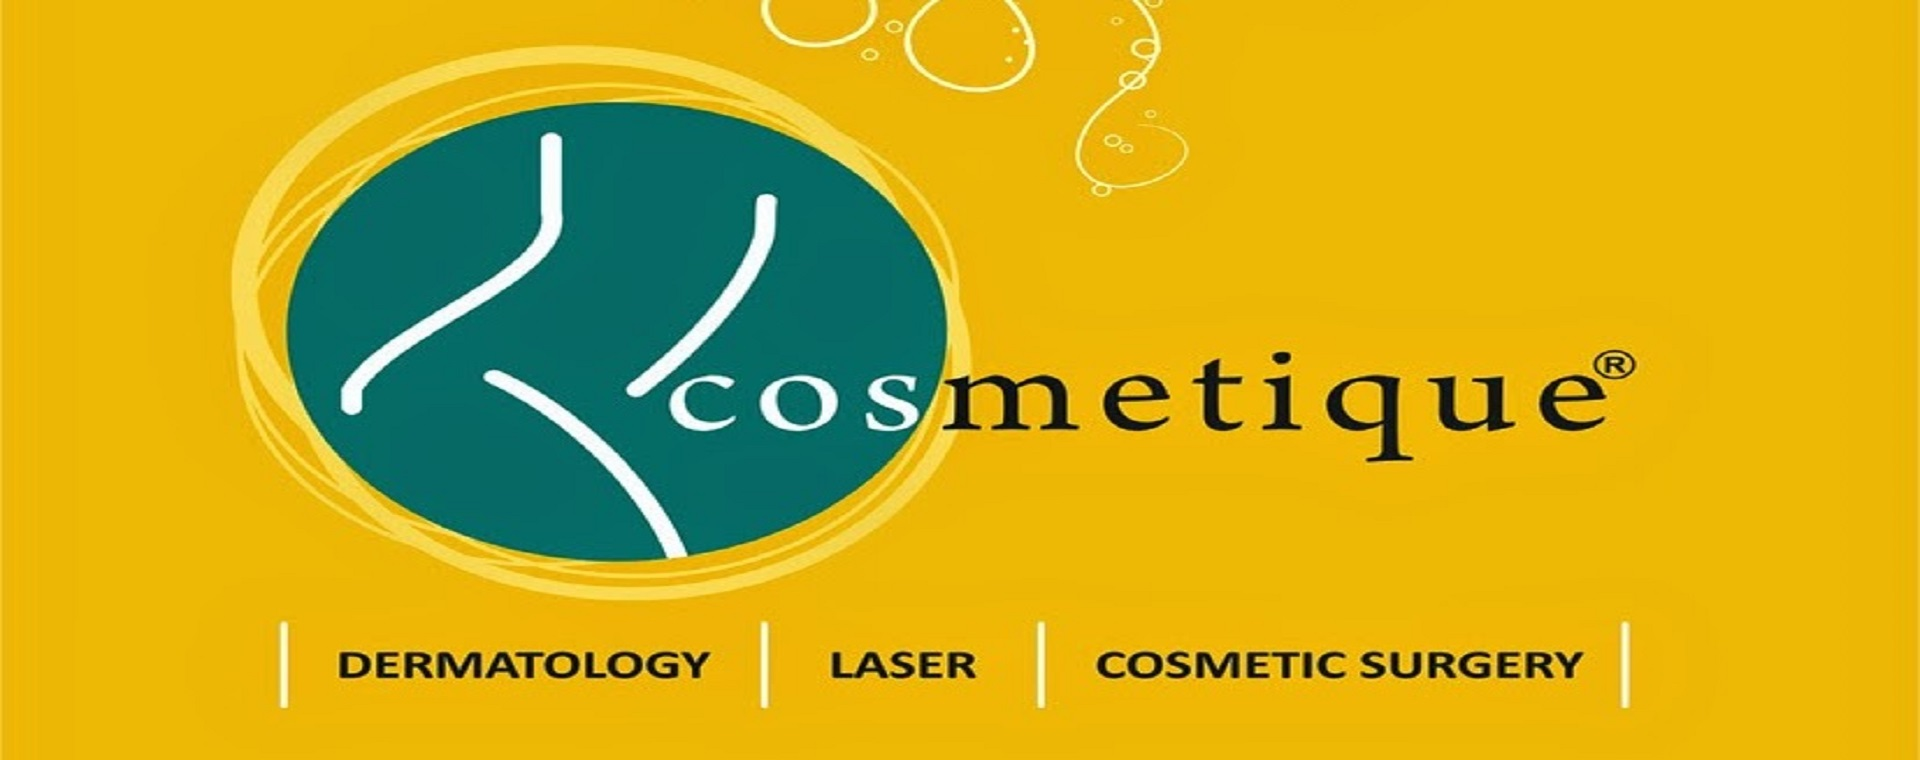 Cosmetique dha lahore front